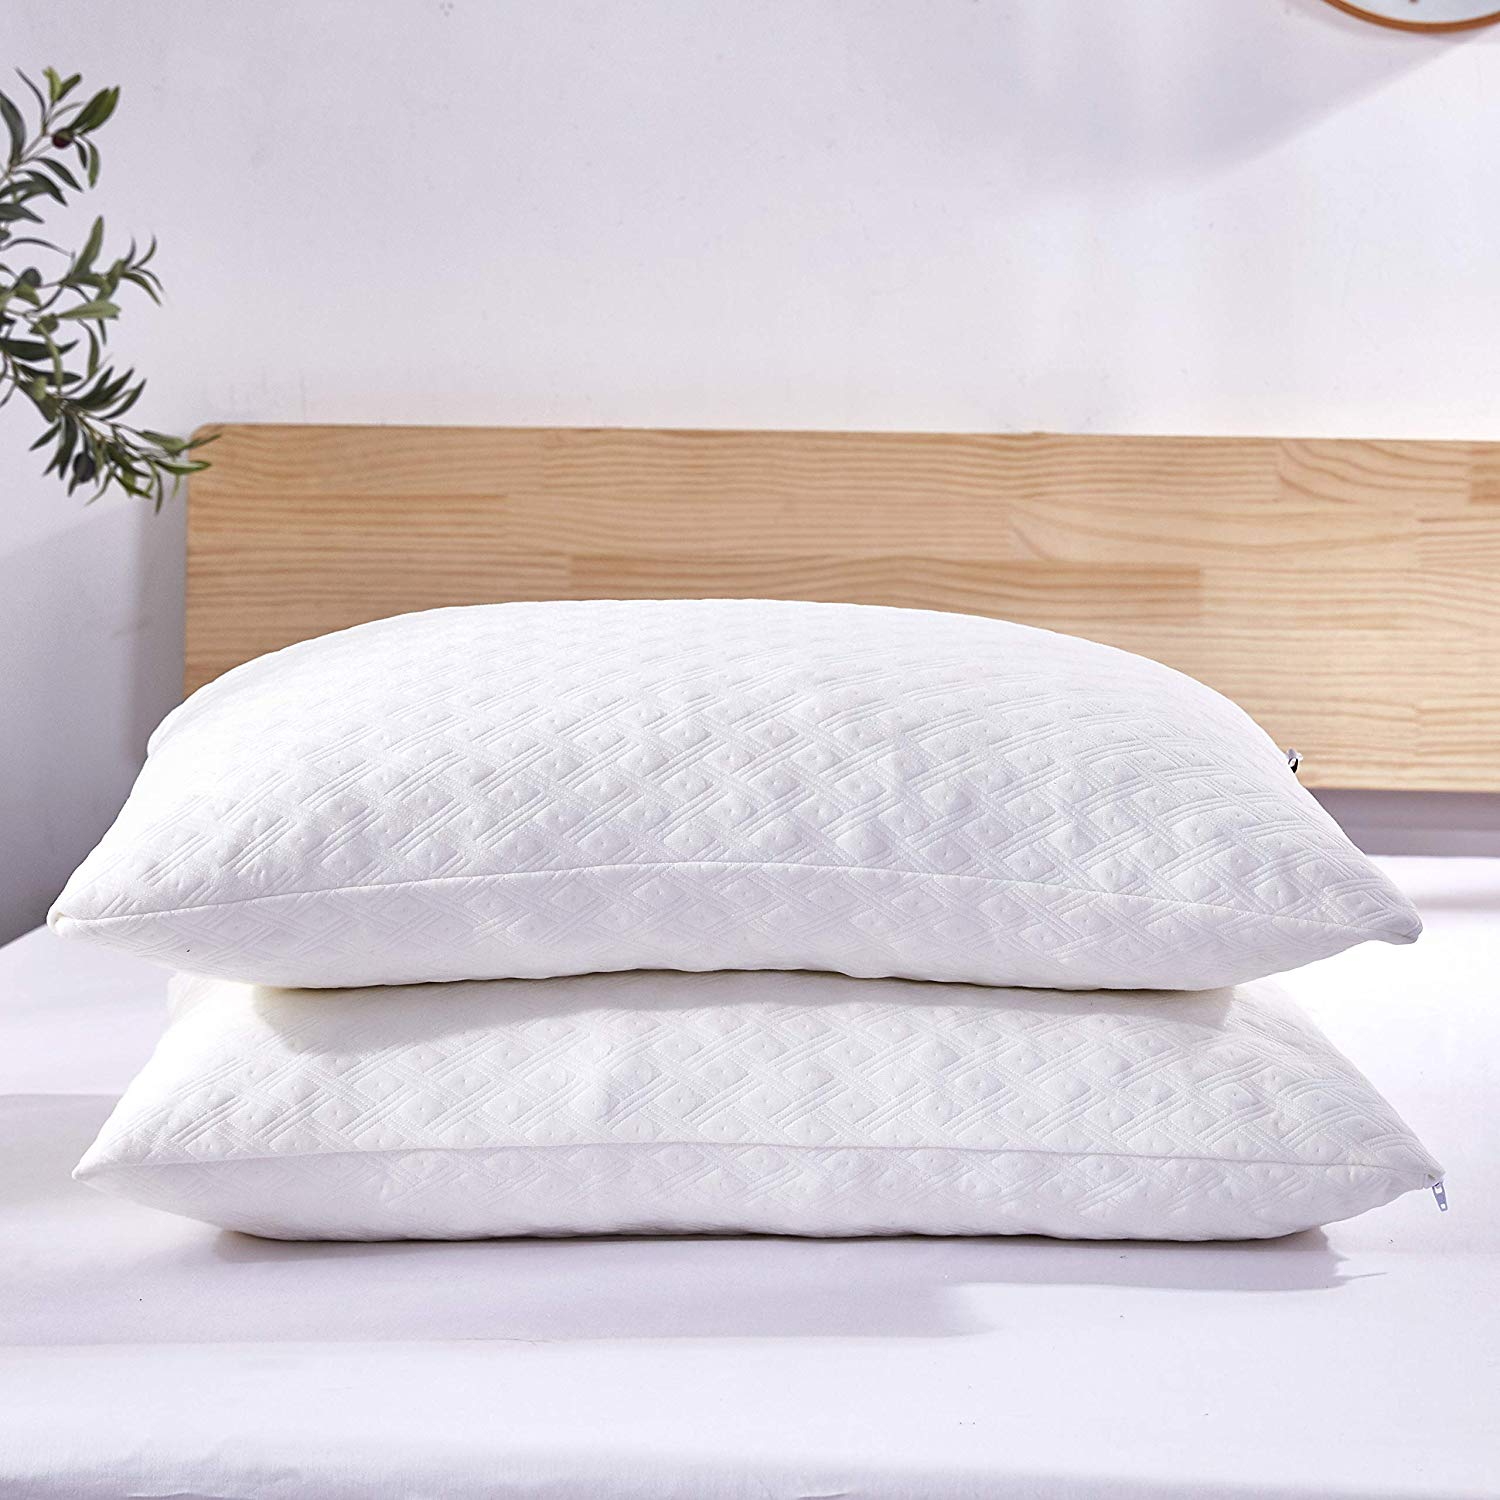 Two memory phone pillows on a bed.